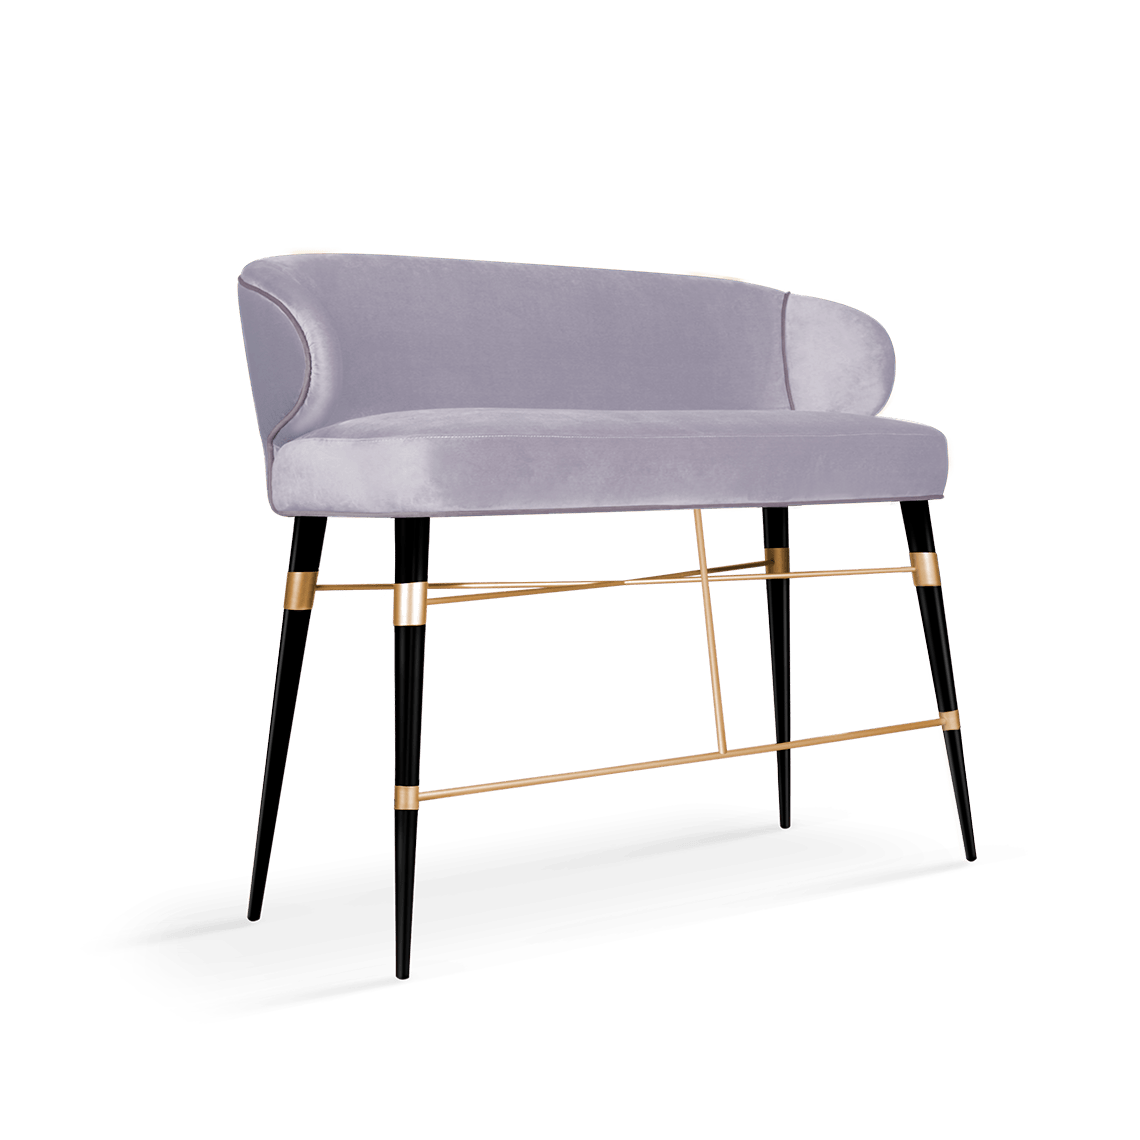 Louis Mid-Century Modern Twin Bar Chair in lavender cotton velvet